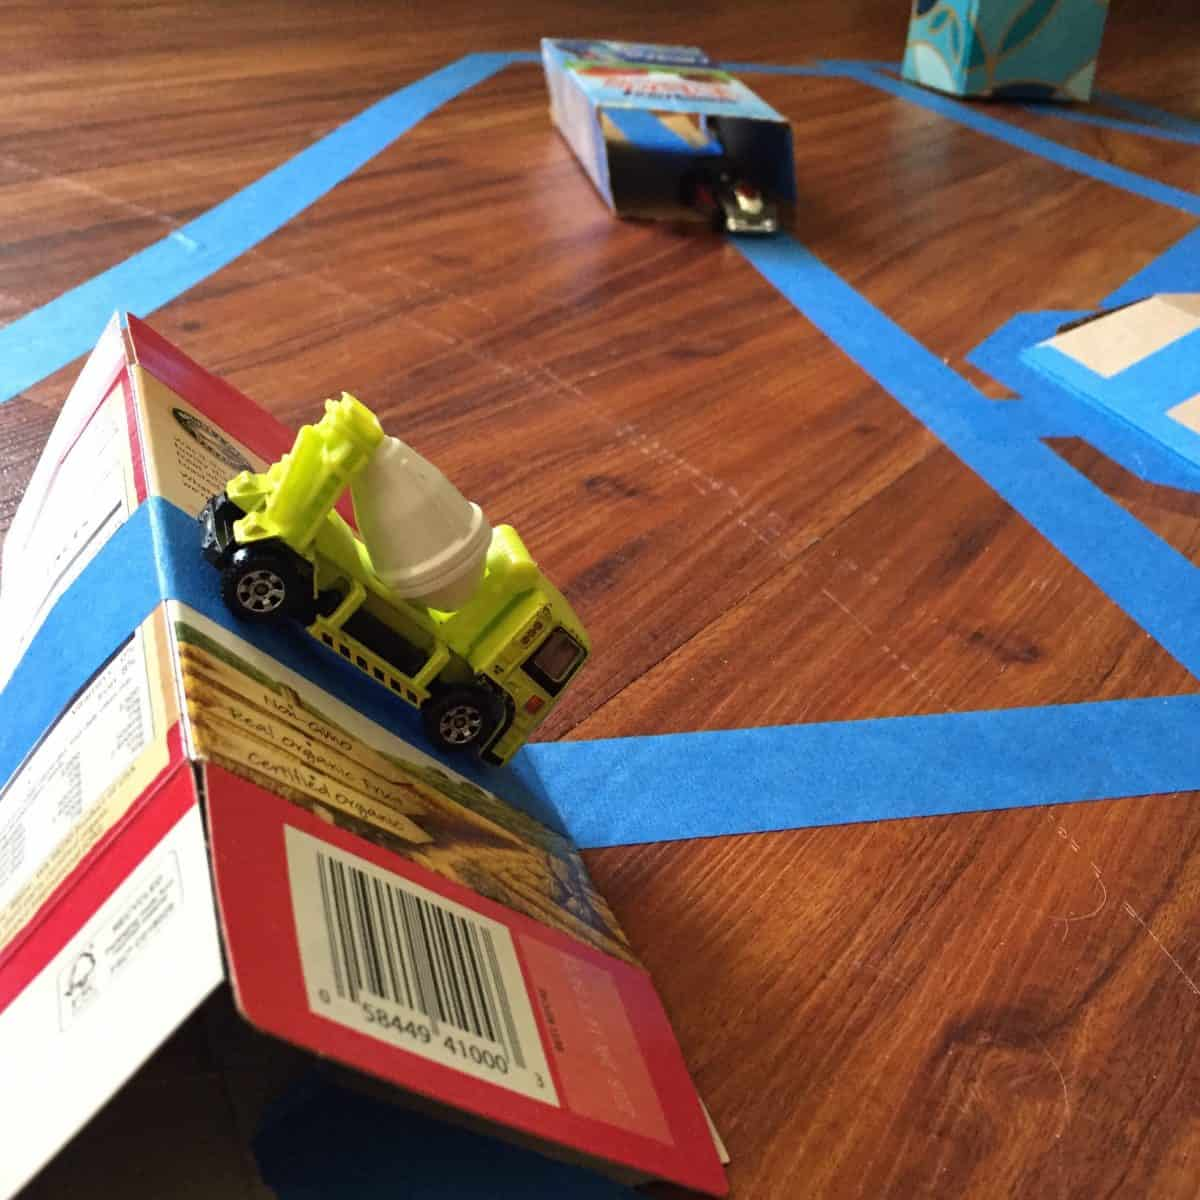 Make your Tape Track epic with these fun and easy recyclable track Add-Ons. Give those toy cars someplace new to play!